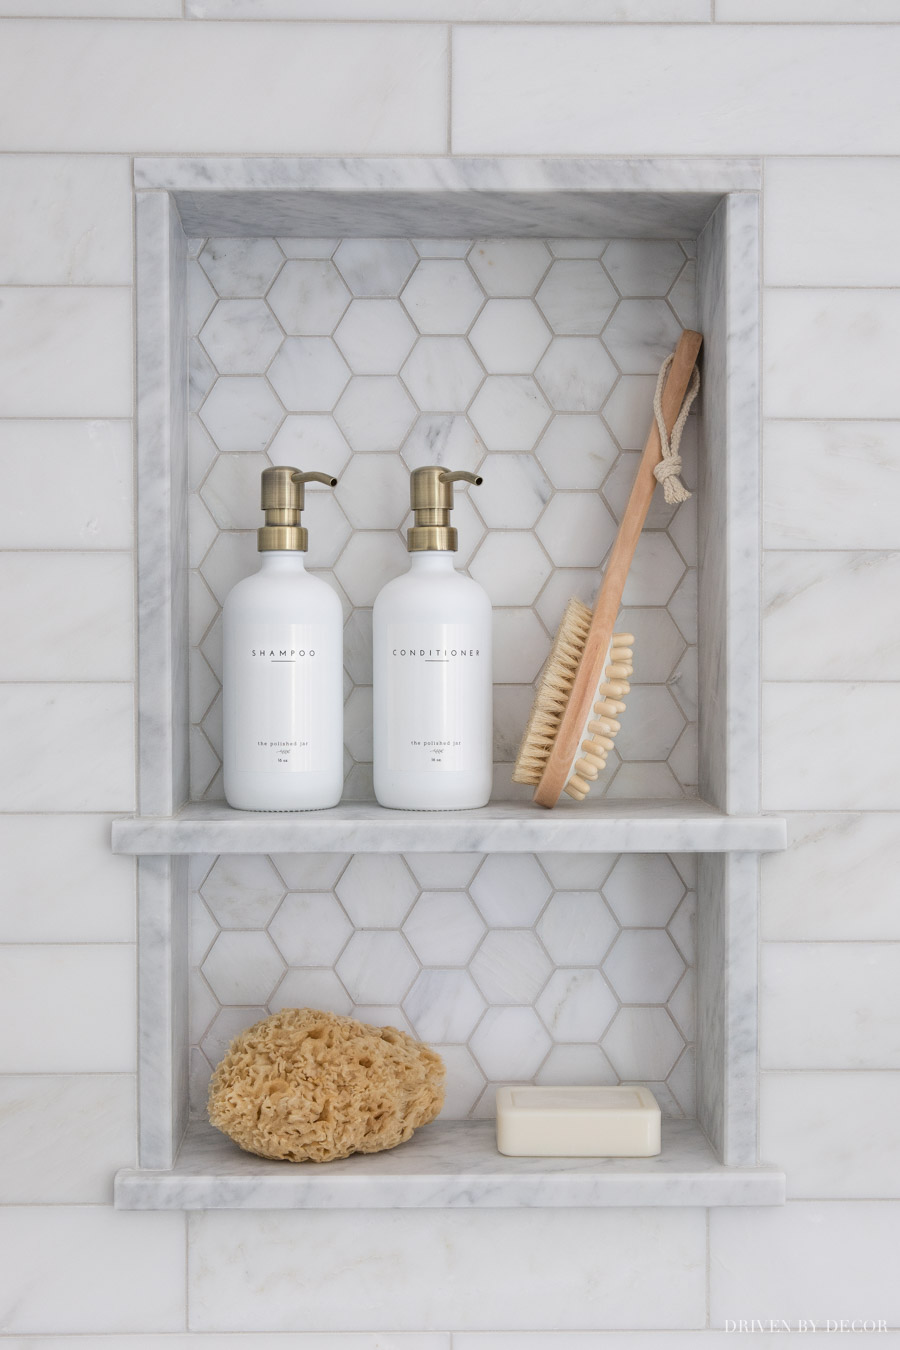 Gorgeous shower niche! Love this idea for our master bathroom remodel!